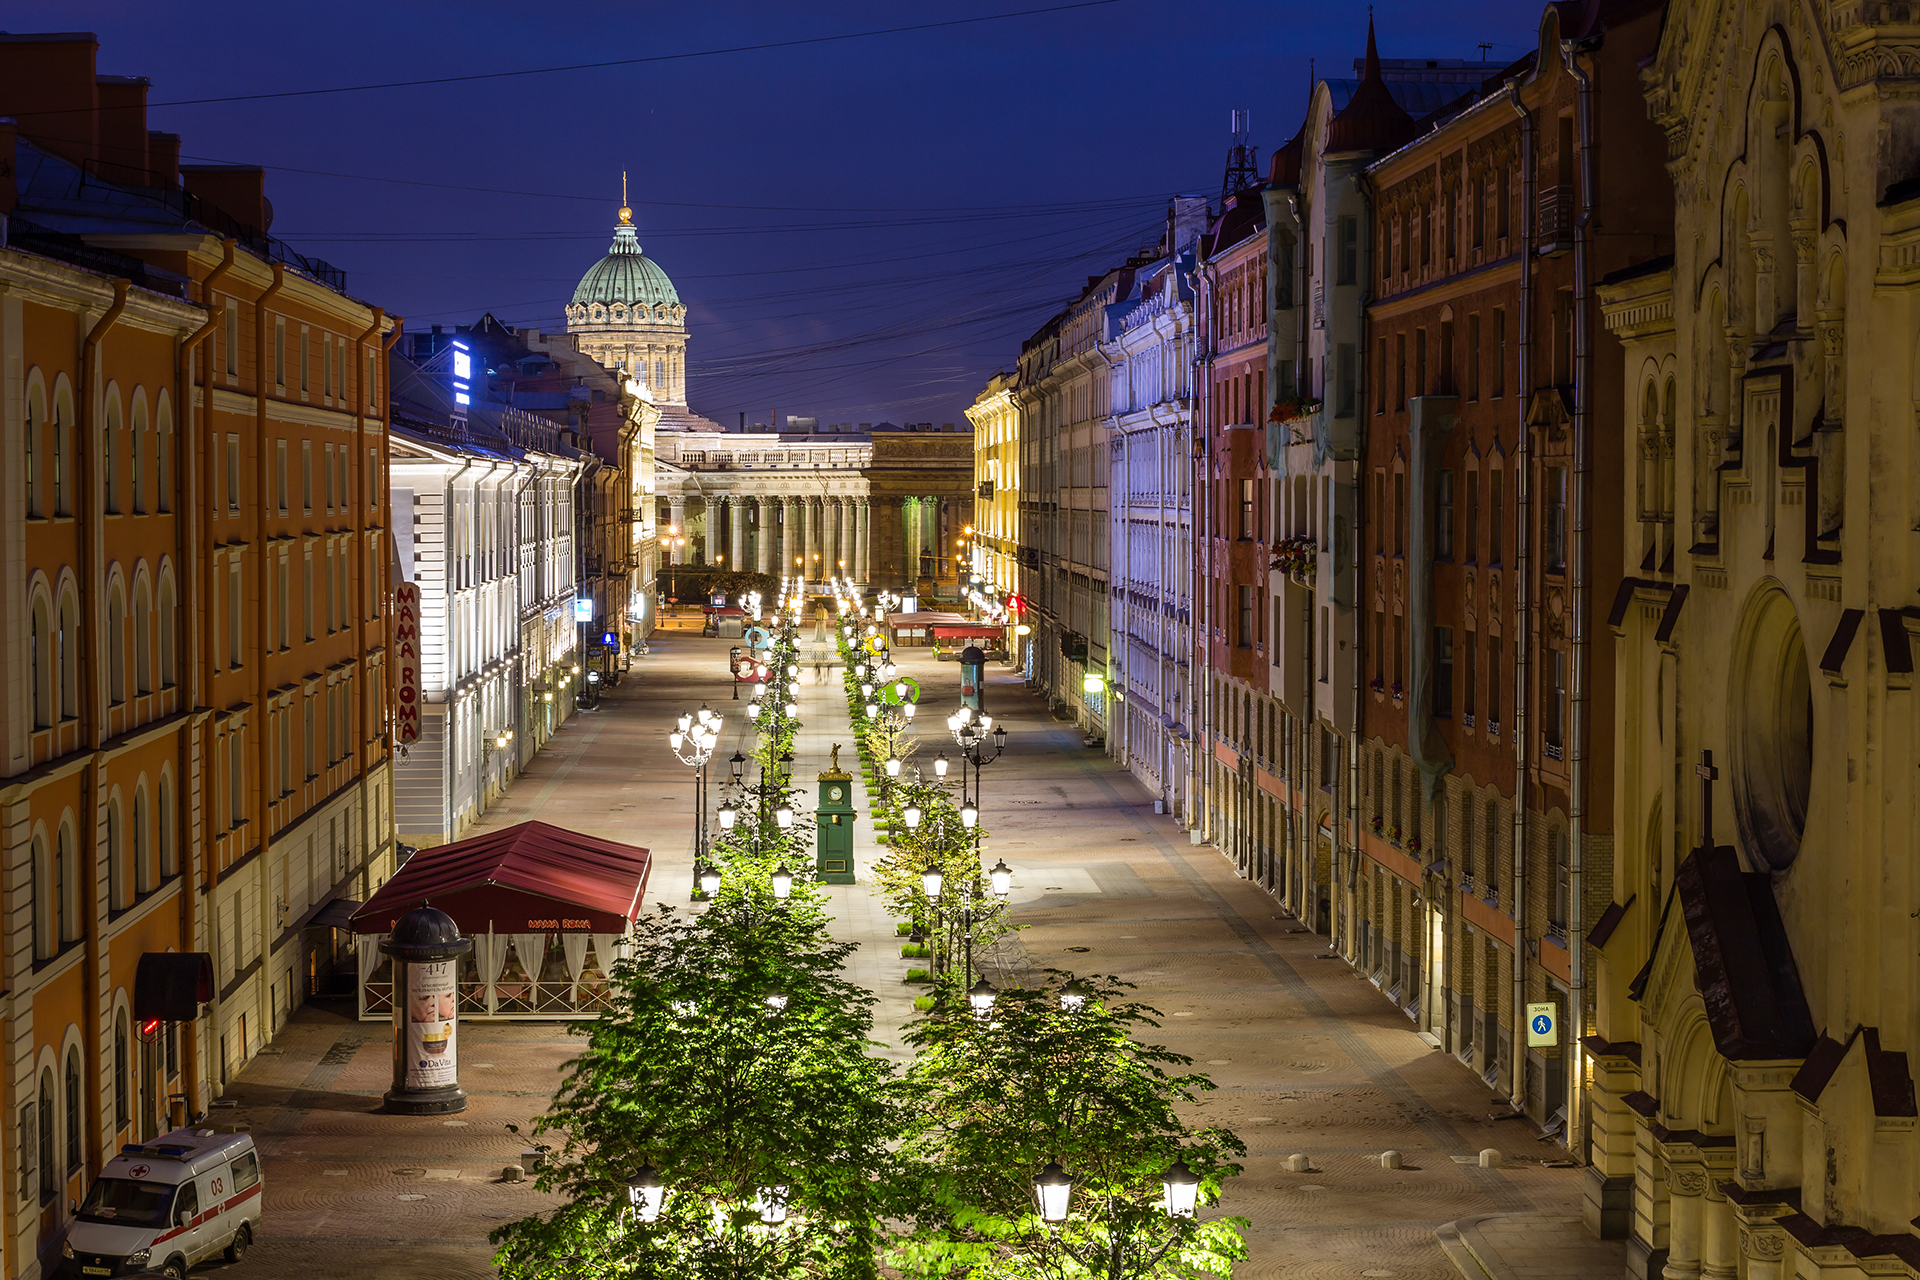 St. Petersburg is much more than just a vibrant city: it's a never-ending feast. From its wide avenues to its ornate remnants from its Imperial past, Russia's Venice of the North never fails to impress.